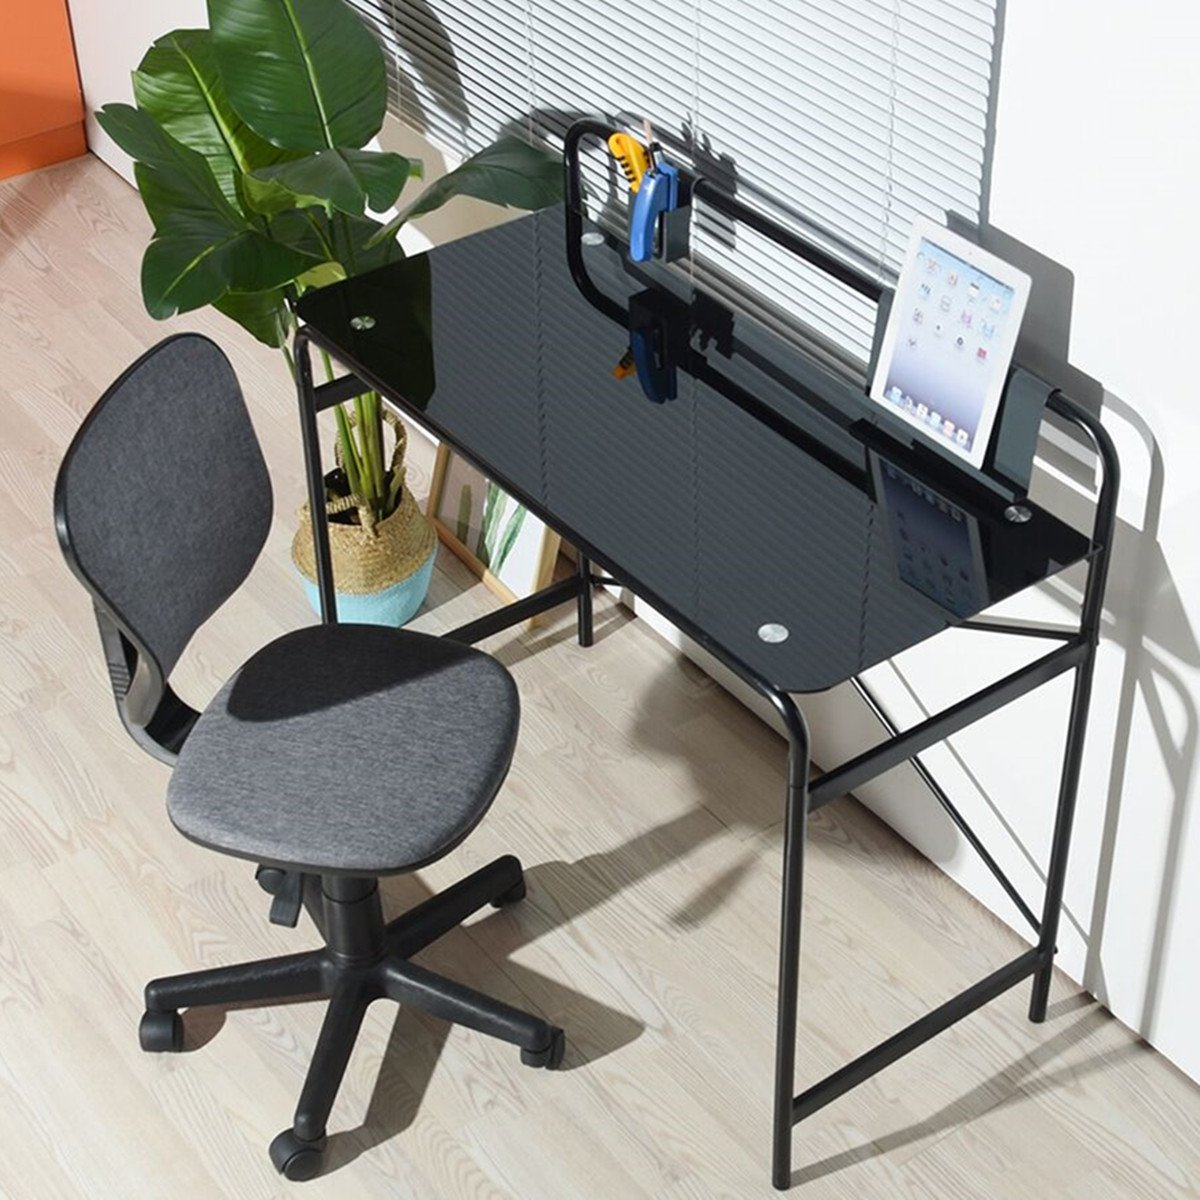 Office Glass Computer Desk Study Laptop Desk Study Glass Surface with Metal Frame Workstation for Home Office Bedroom Students Table - Black